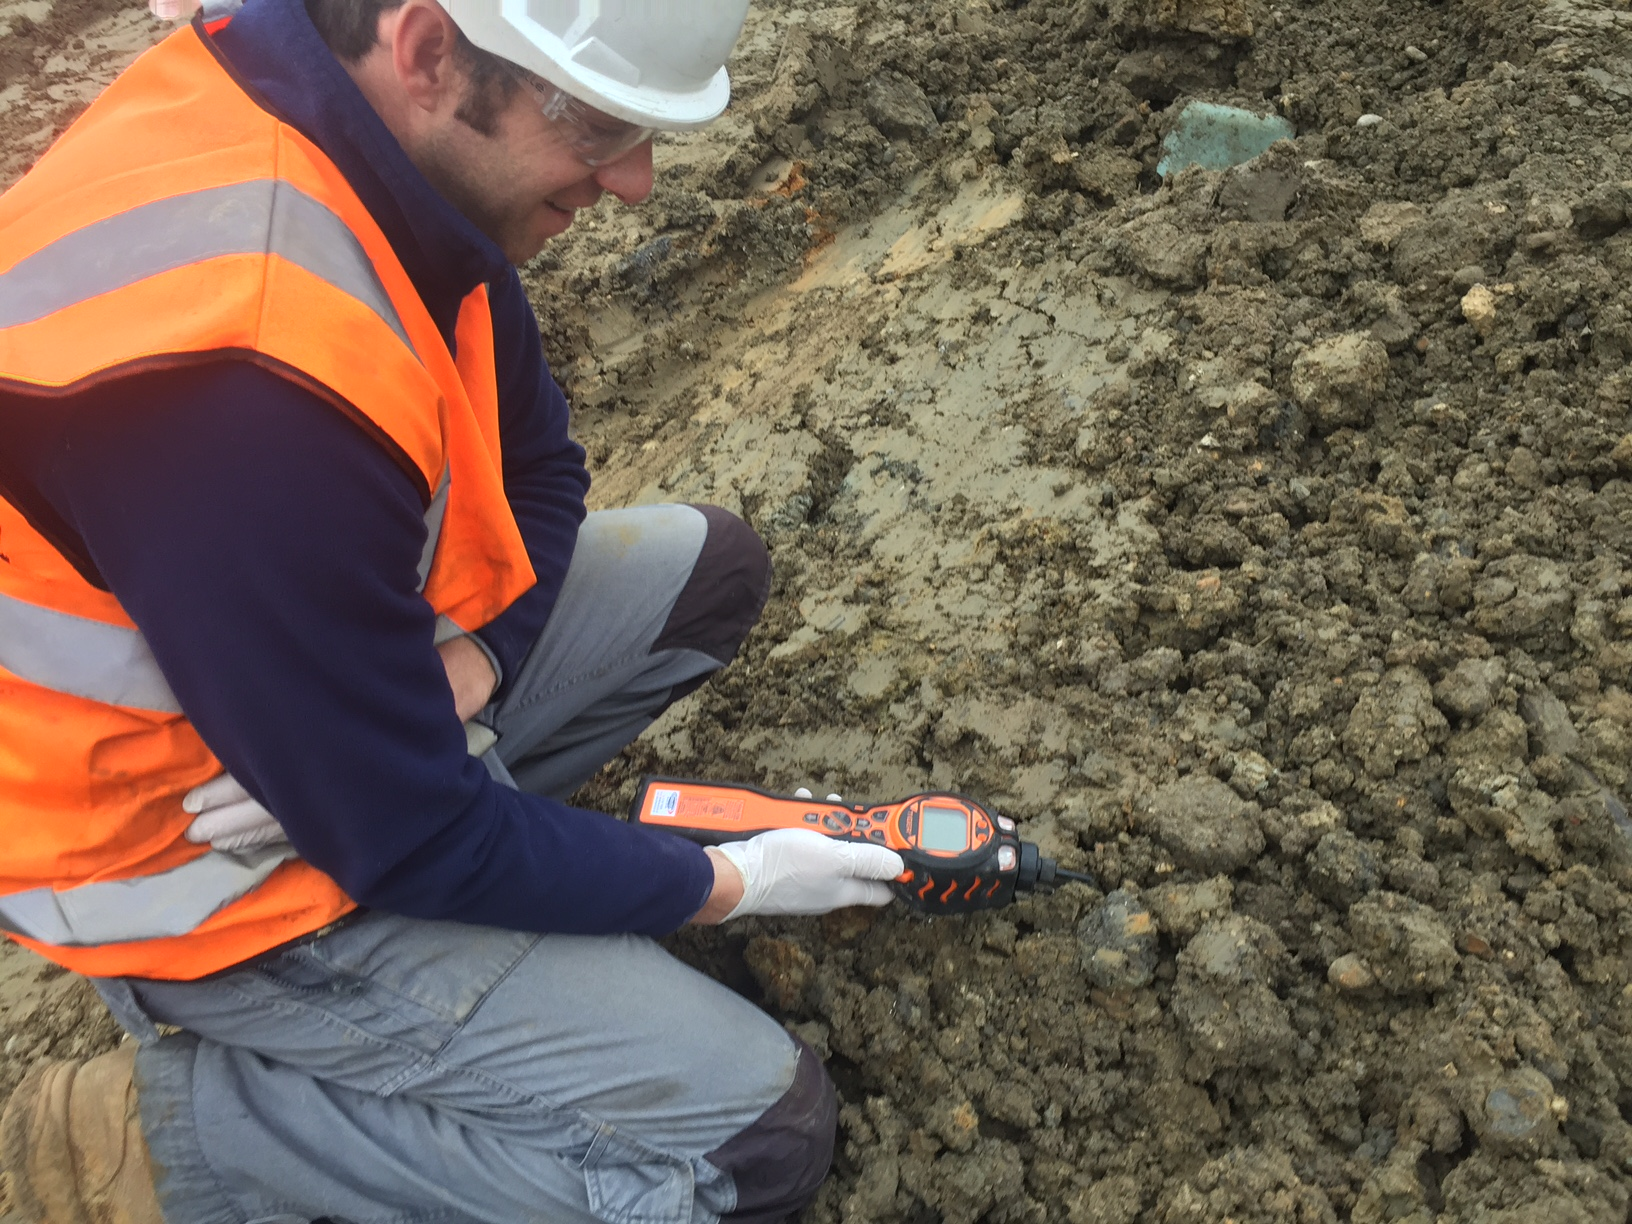 The MiniPID Photo-Ionisation-Detector can be used in land remediation